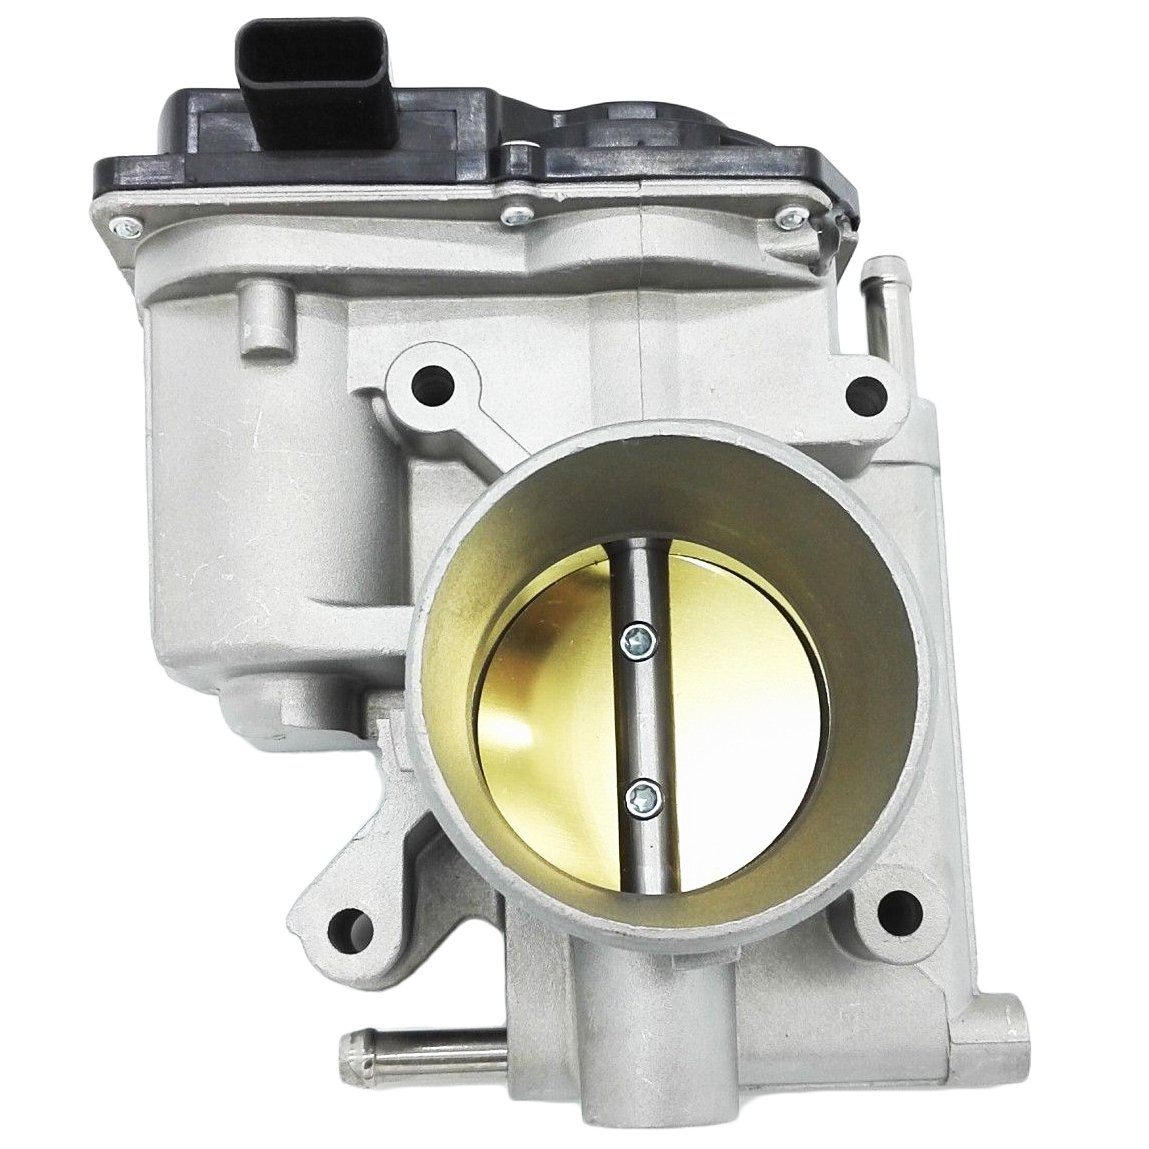 Fuel Injection Throttle Body for 06-13 Mazda 3 Mazda 5 Mazda 6 2.0 2.3L L3R413640 by Mr Fix